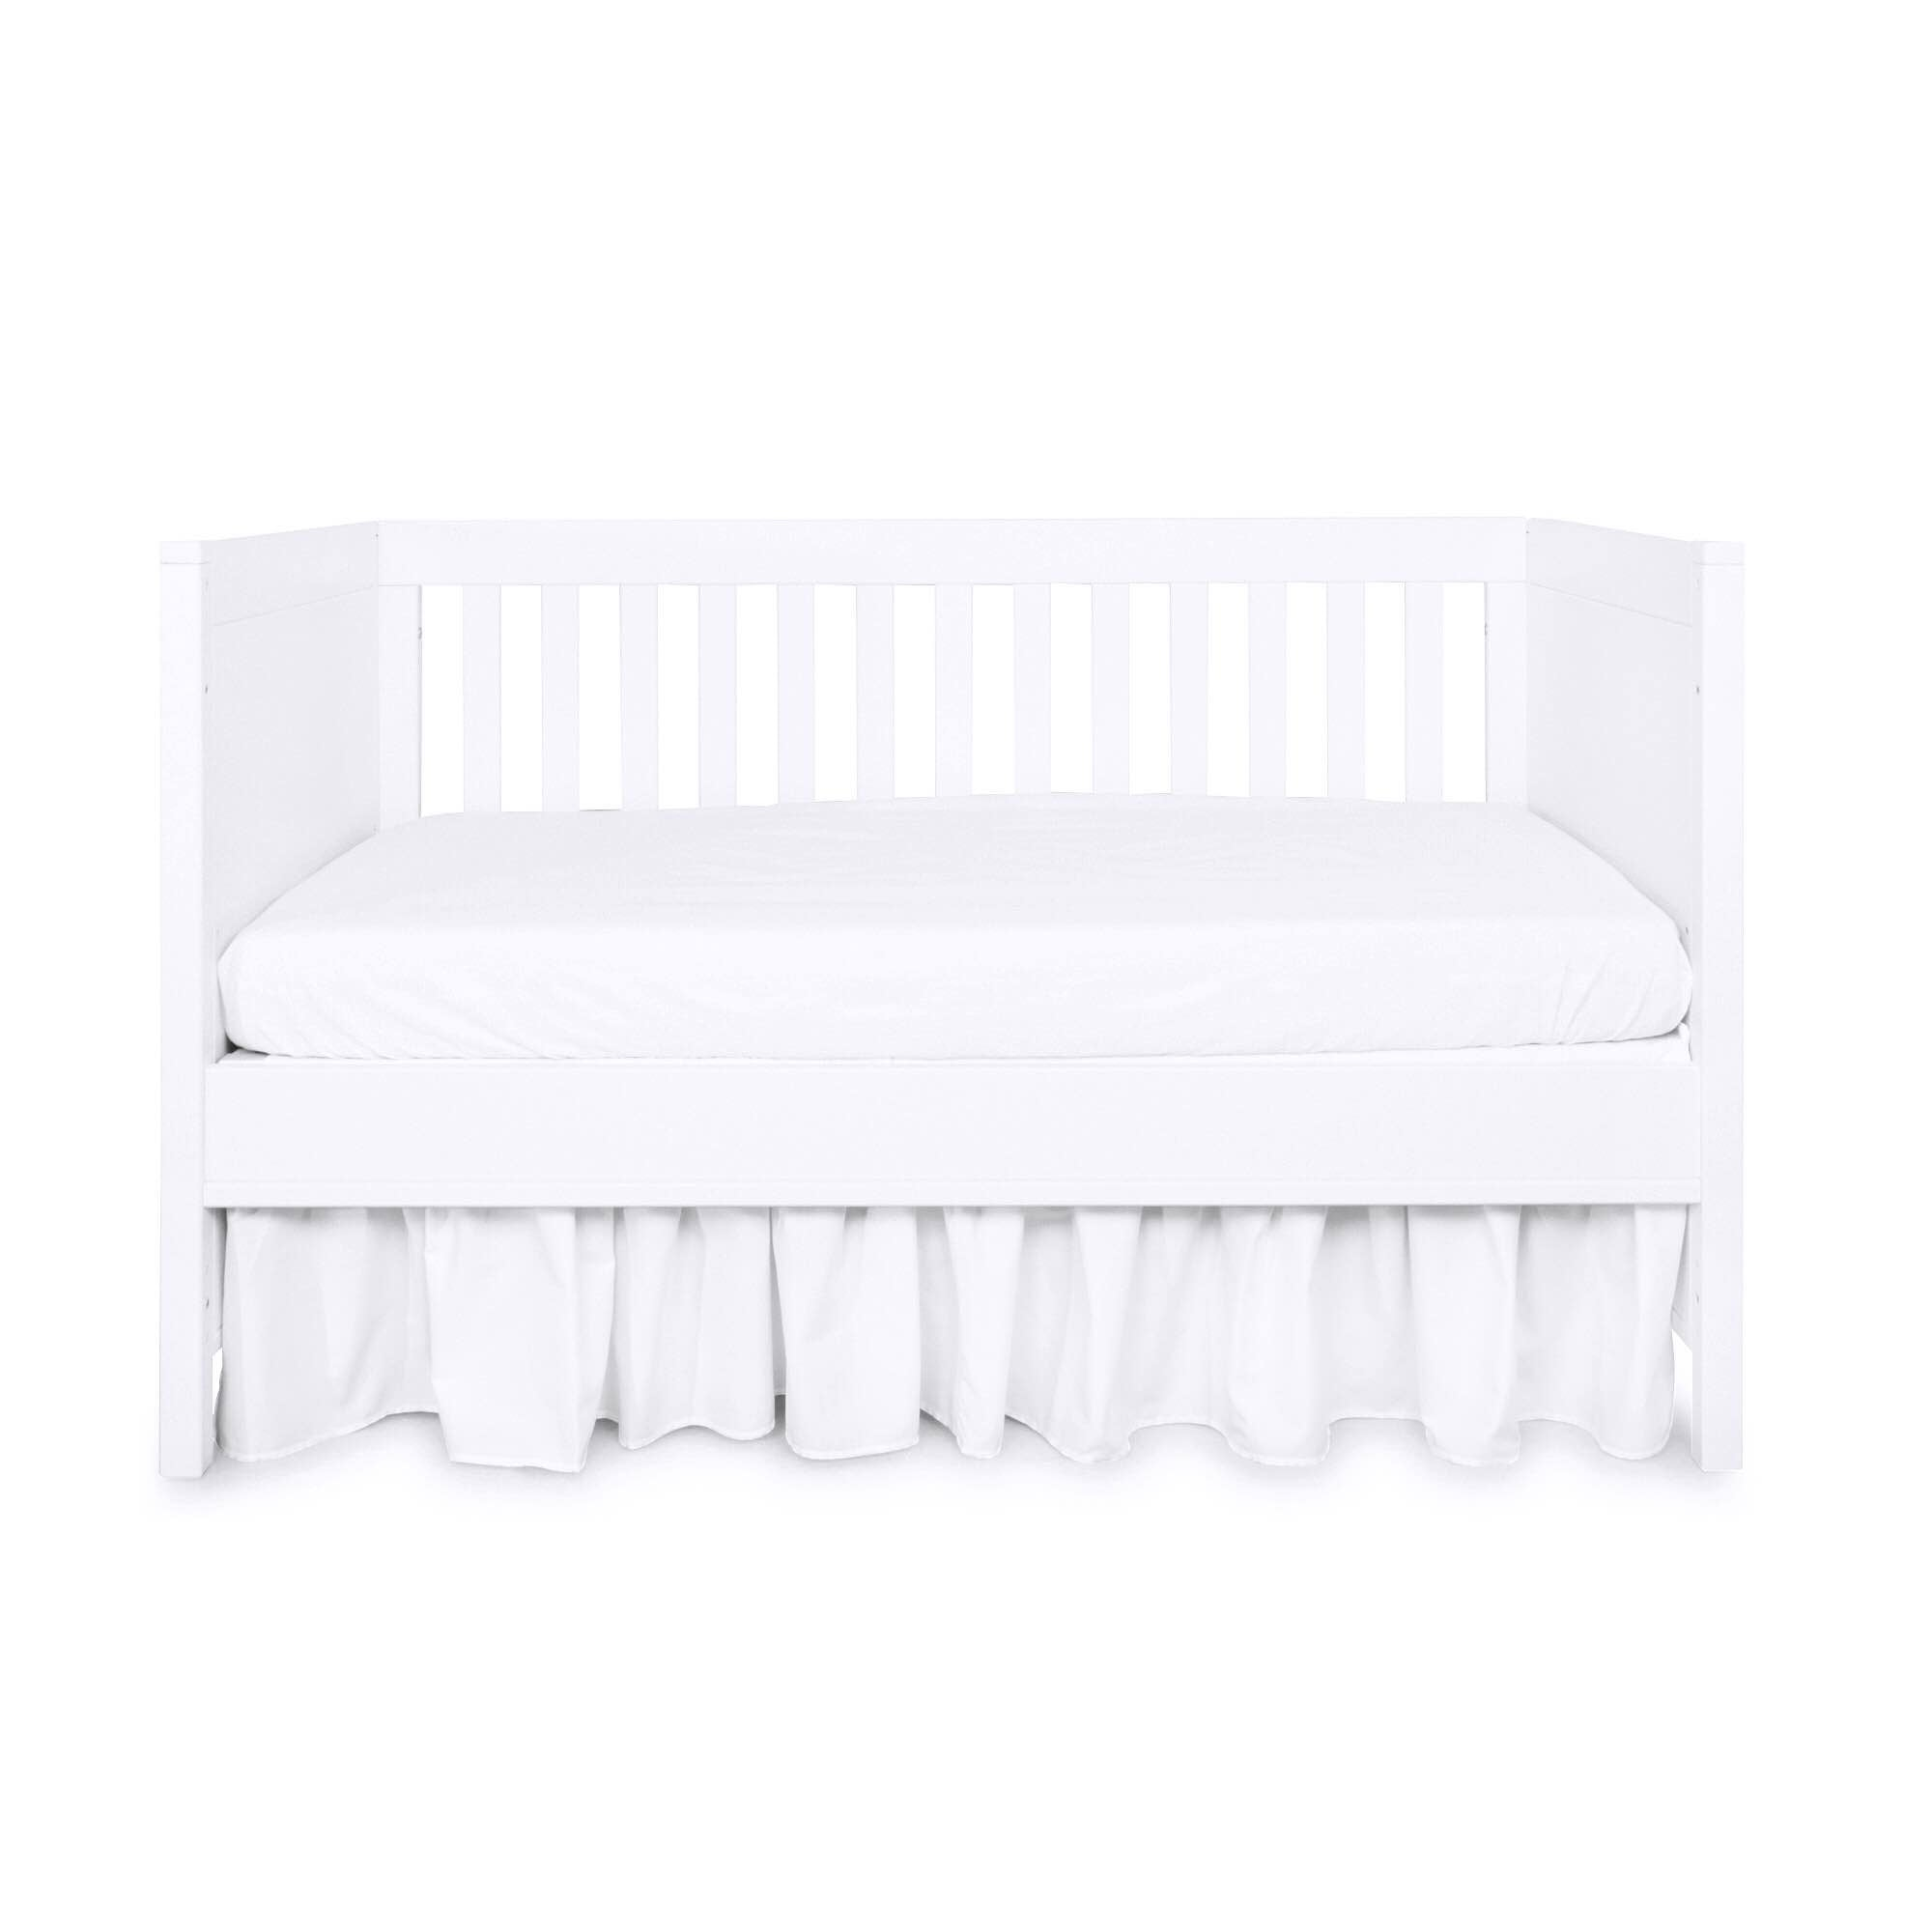 Theophile & Patachou Bed Skirt 70cm - Royal White